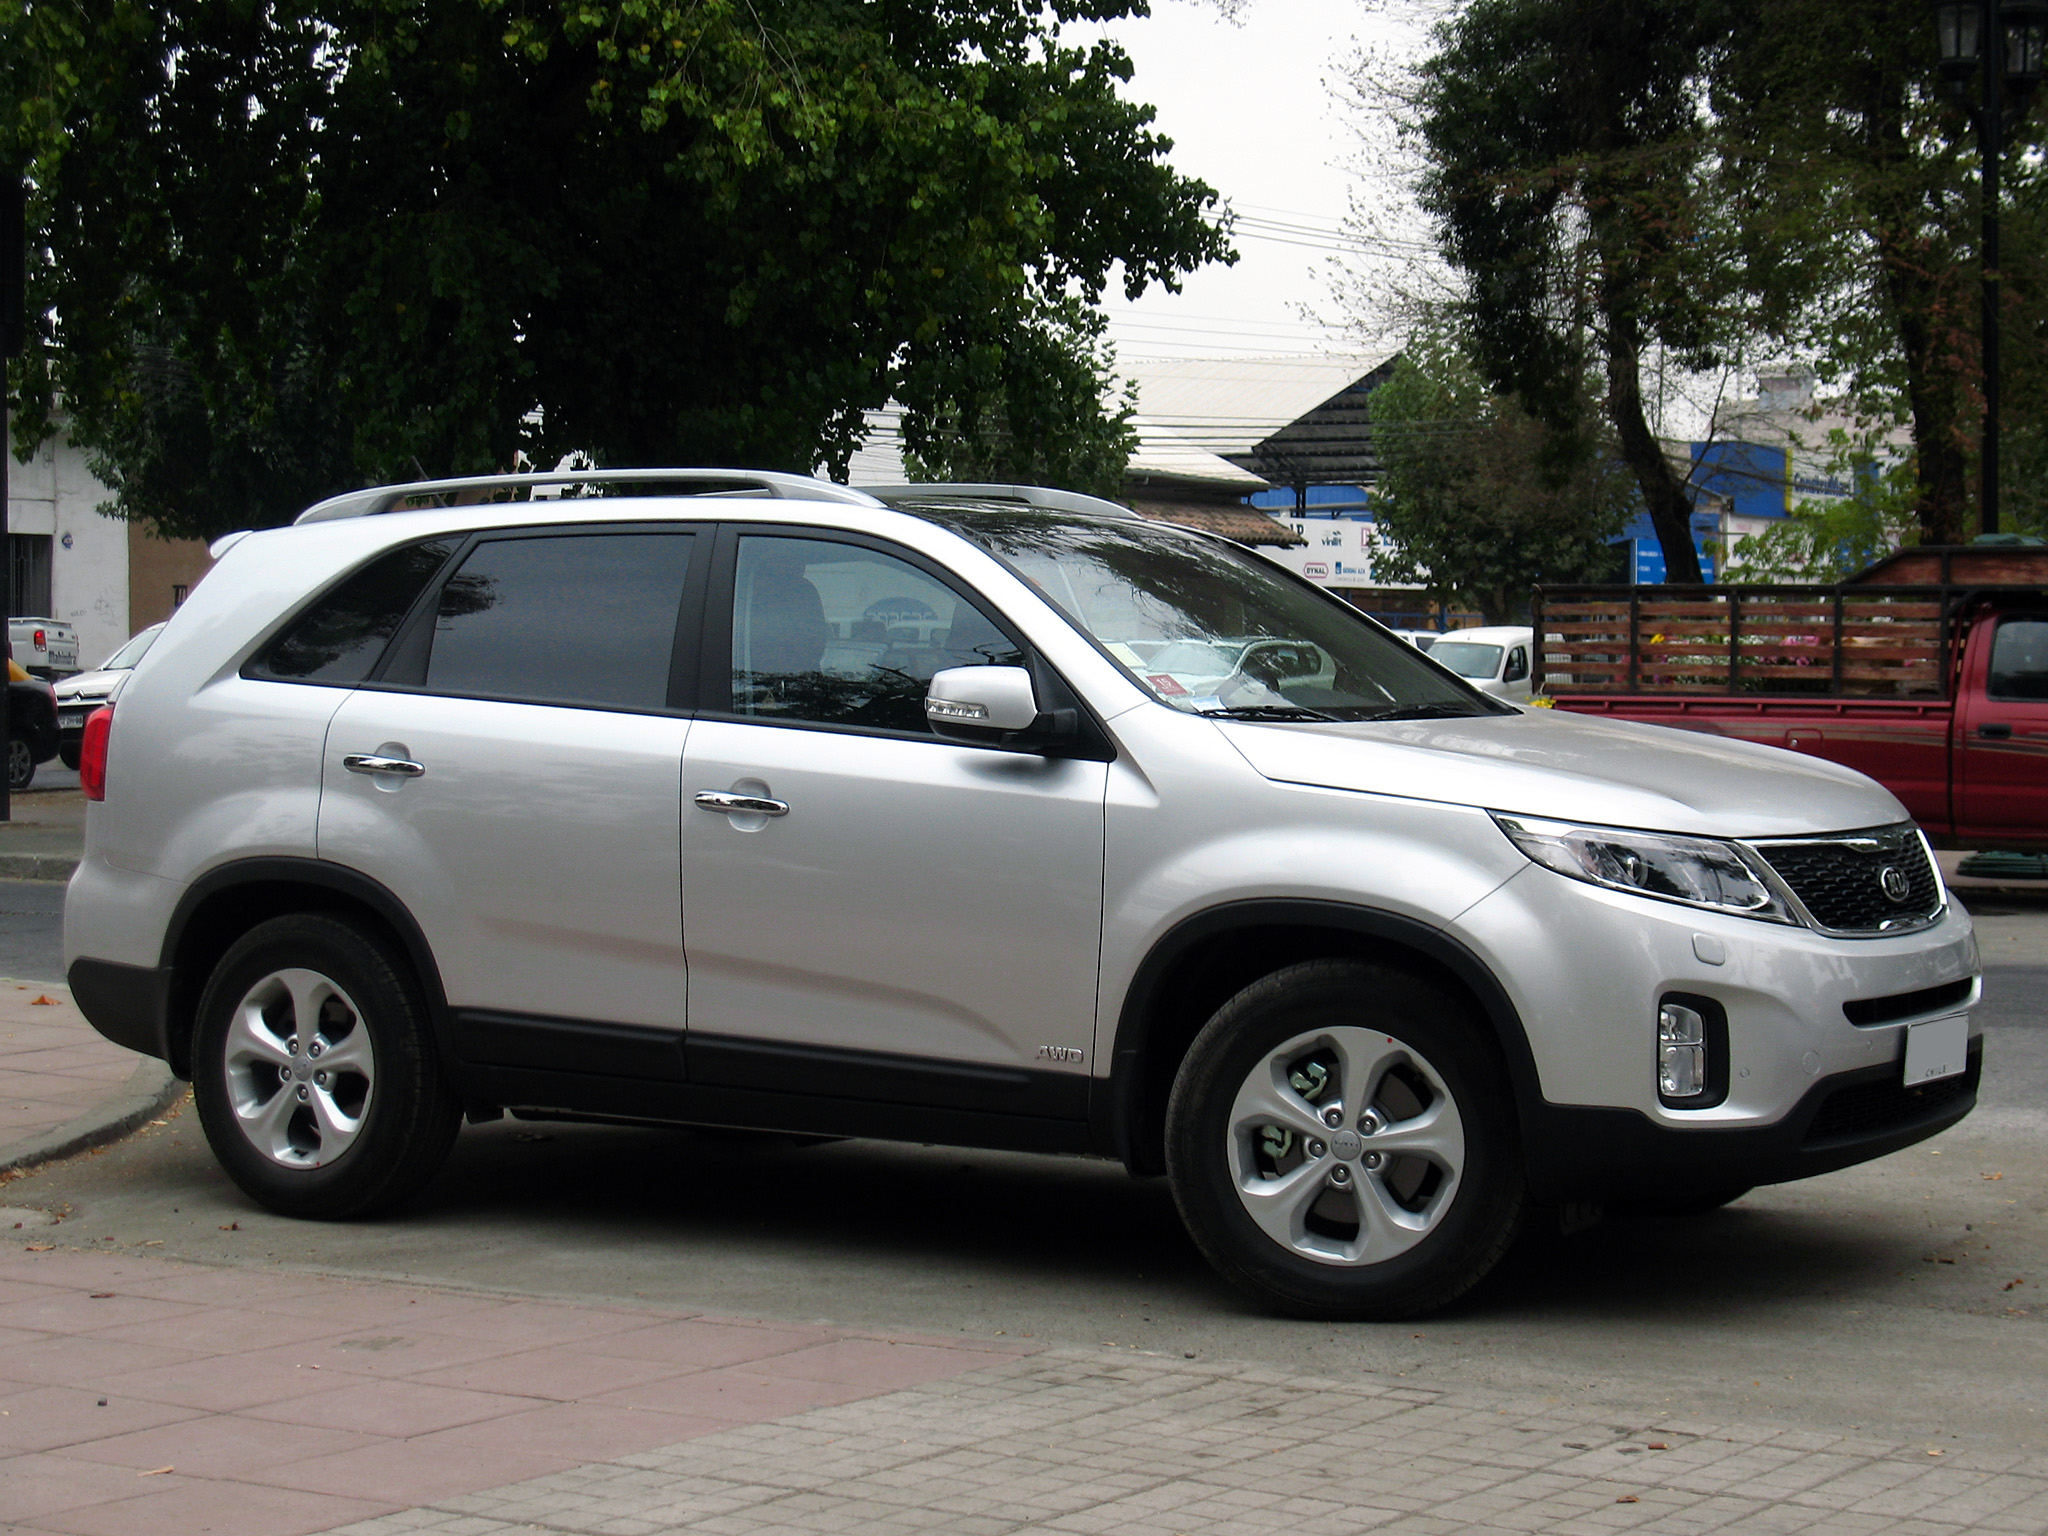 file kia sorento ex 2 2 crdi awd 2013 9571247699 jpg wikimedia commons. Black Bedroom Furniture Sets. Home Design Ideas